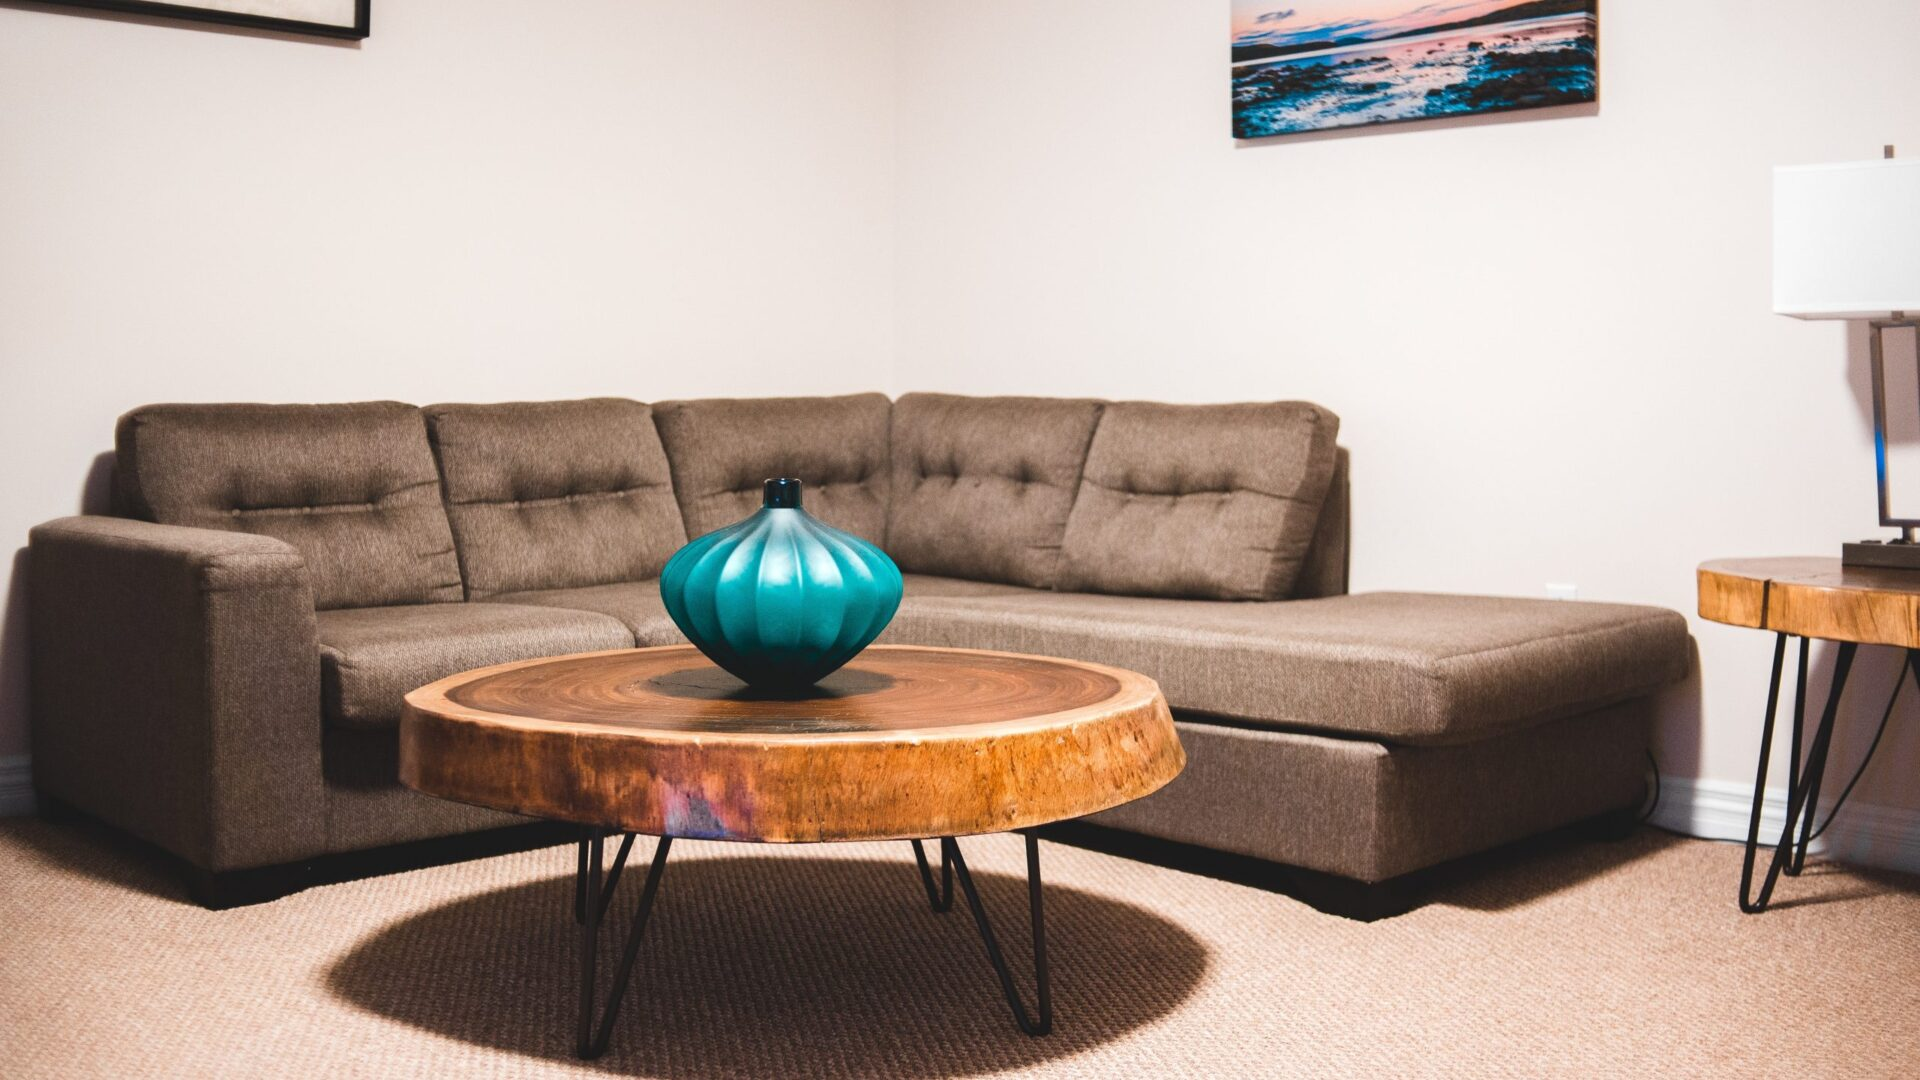 Modern Coffee Table with Blue Vase